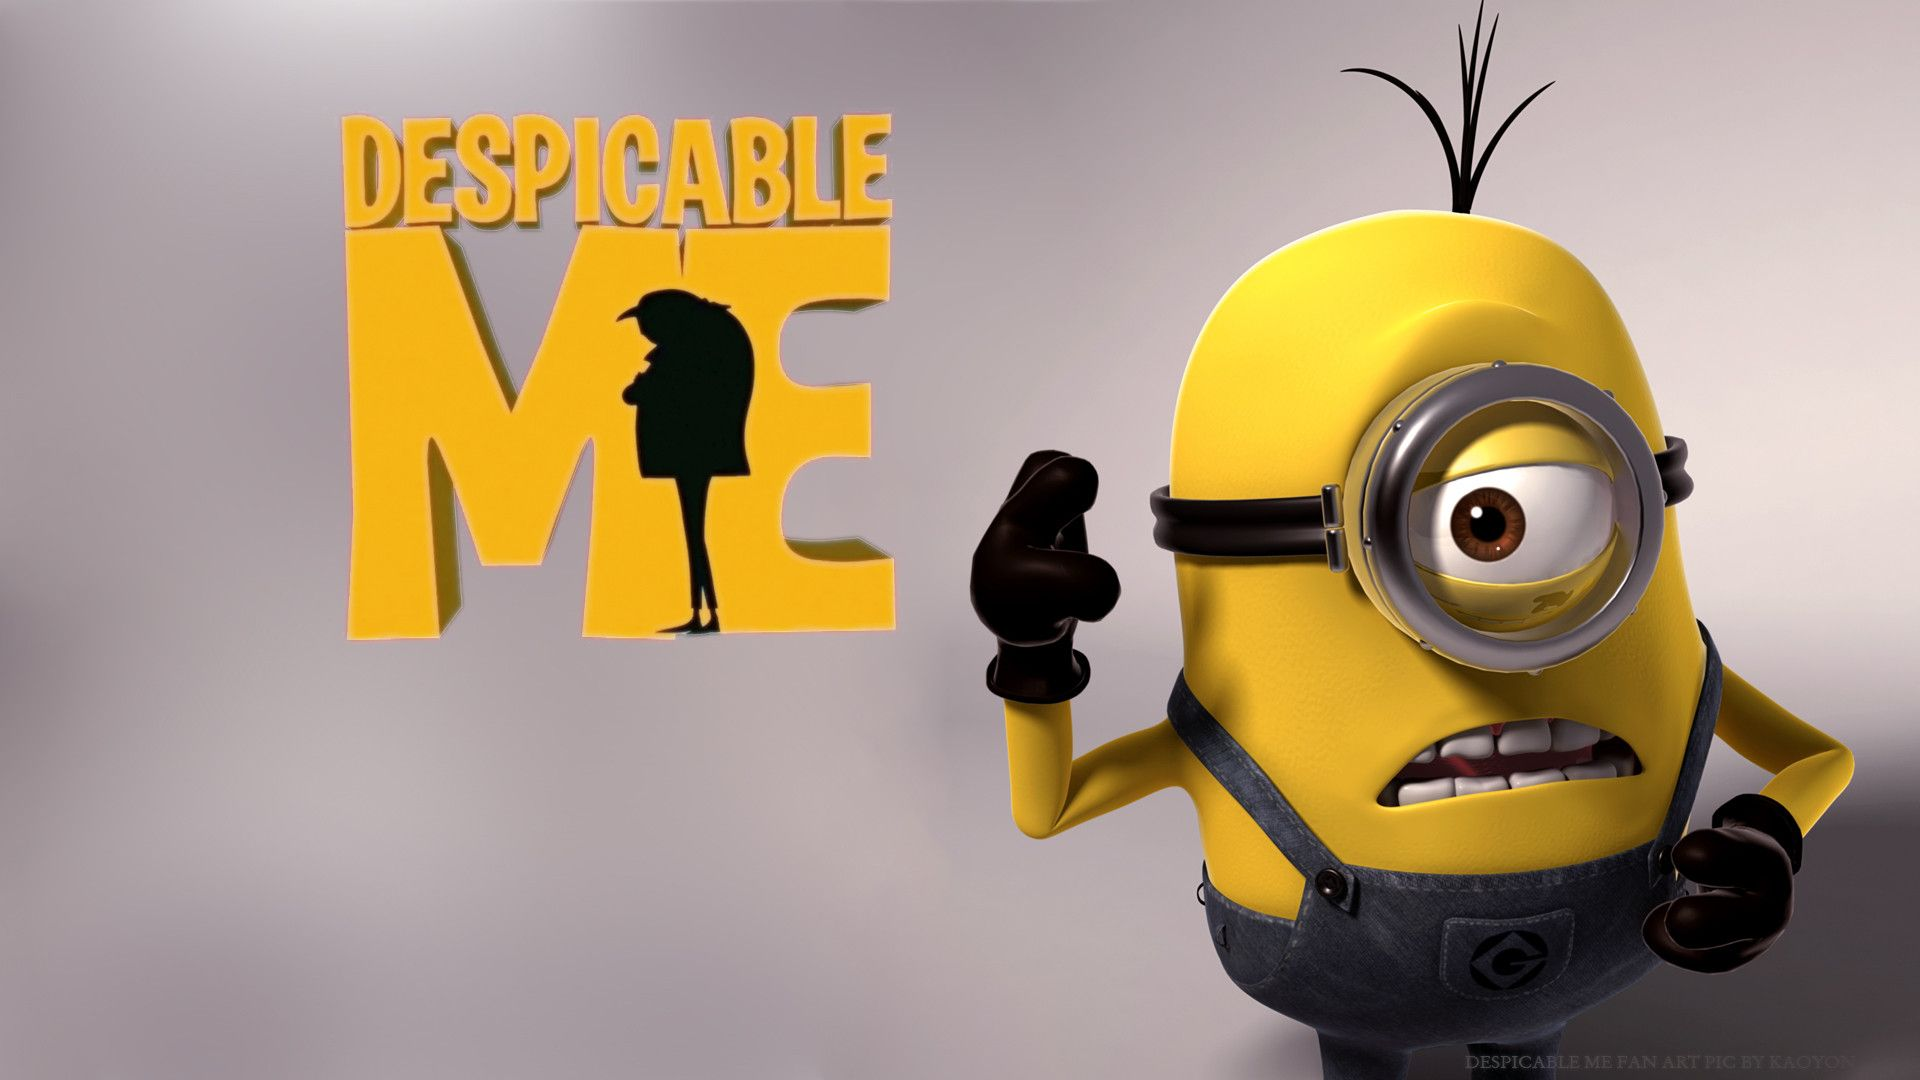 Despicable-Me-Minions-wallpaper-wpc9004217